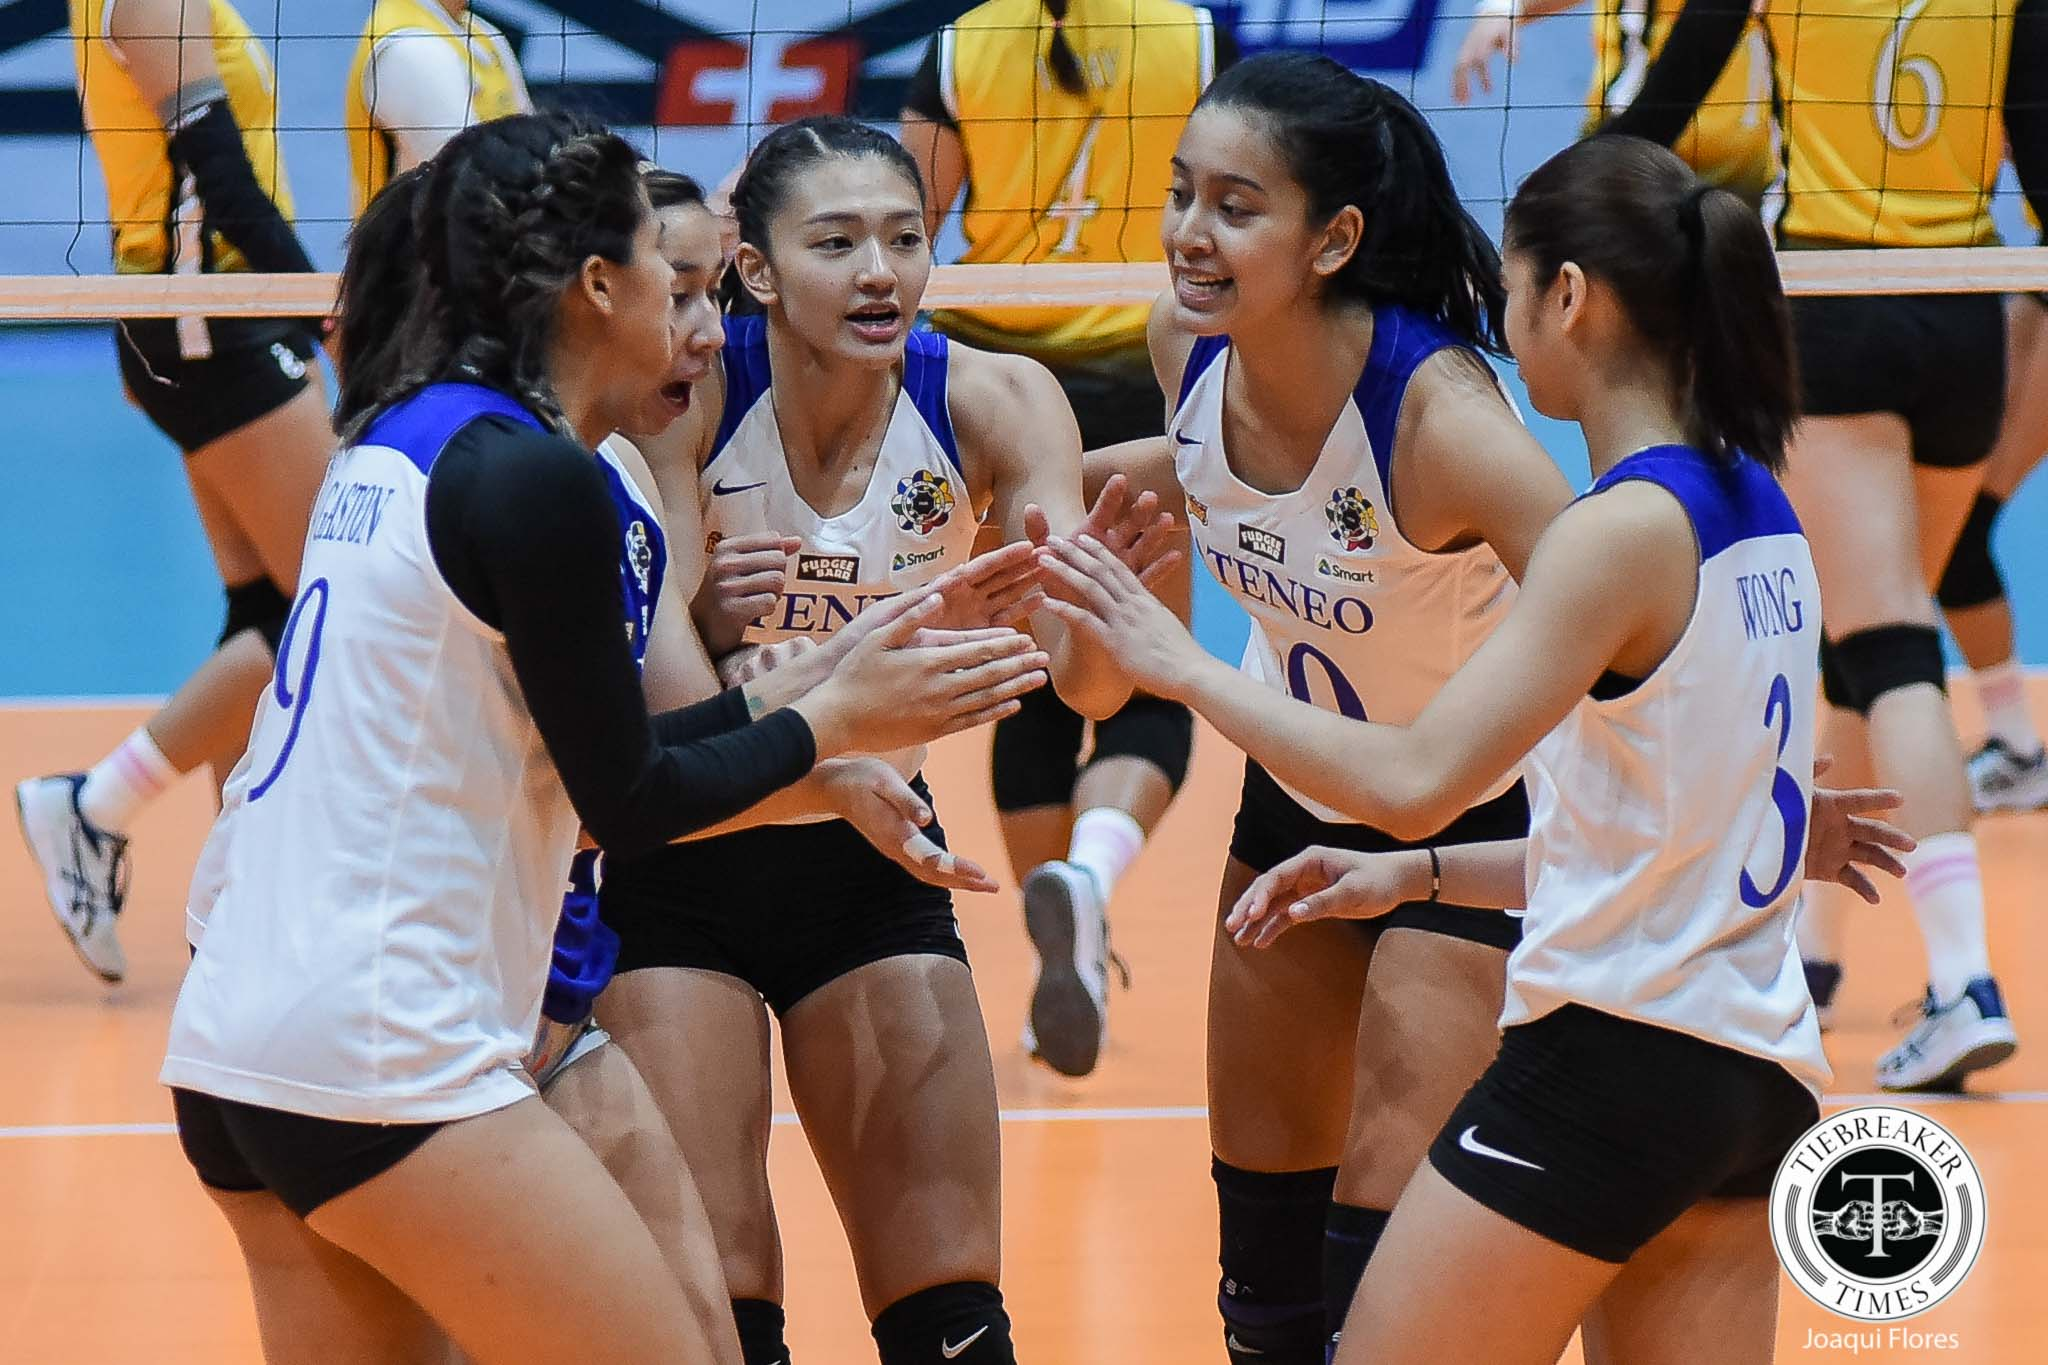 Tiebreaker Times Madayag on Tolentino's return to Ateneo: 'It's Kat's time' ADMU News PVL UAAP Volleyball  UAAP Season 82 Women's Volleyball UAAP Season 82 Maddie Madayag Kat Tolentino Choco Mucho Flying Titans Ateneo Women's Volleyball 2019 PVL Season